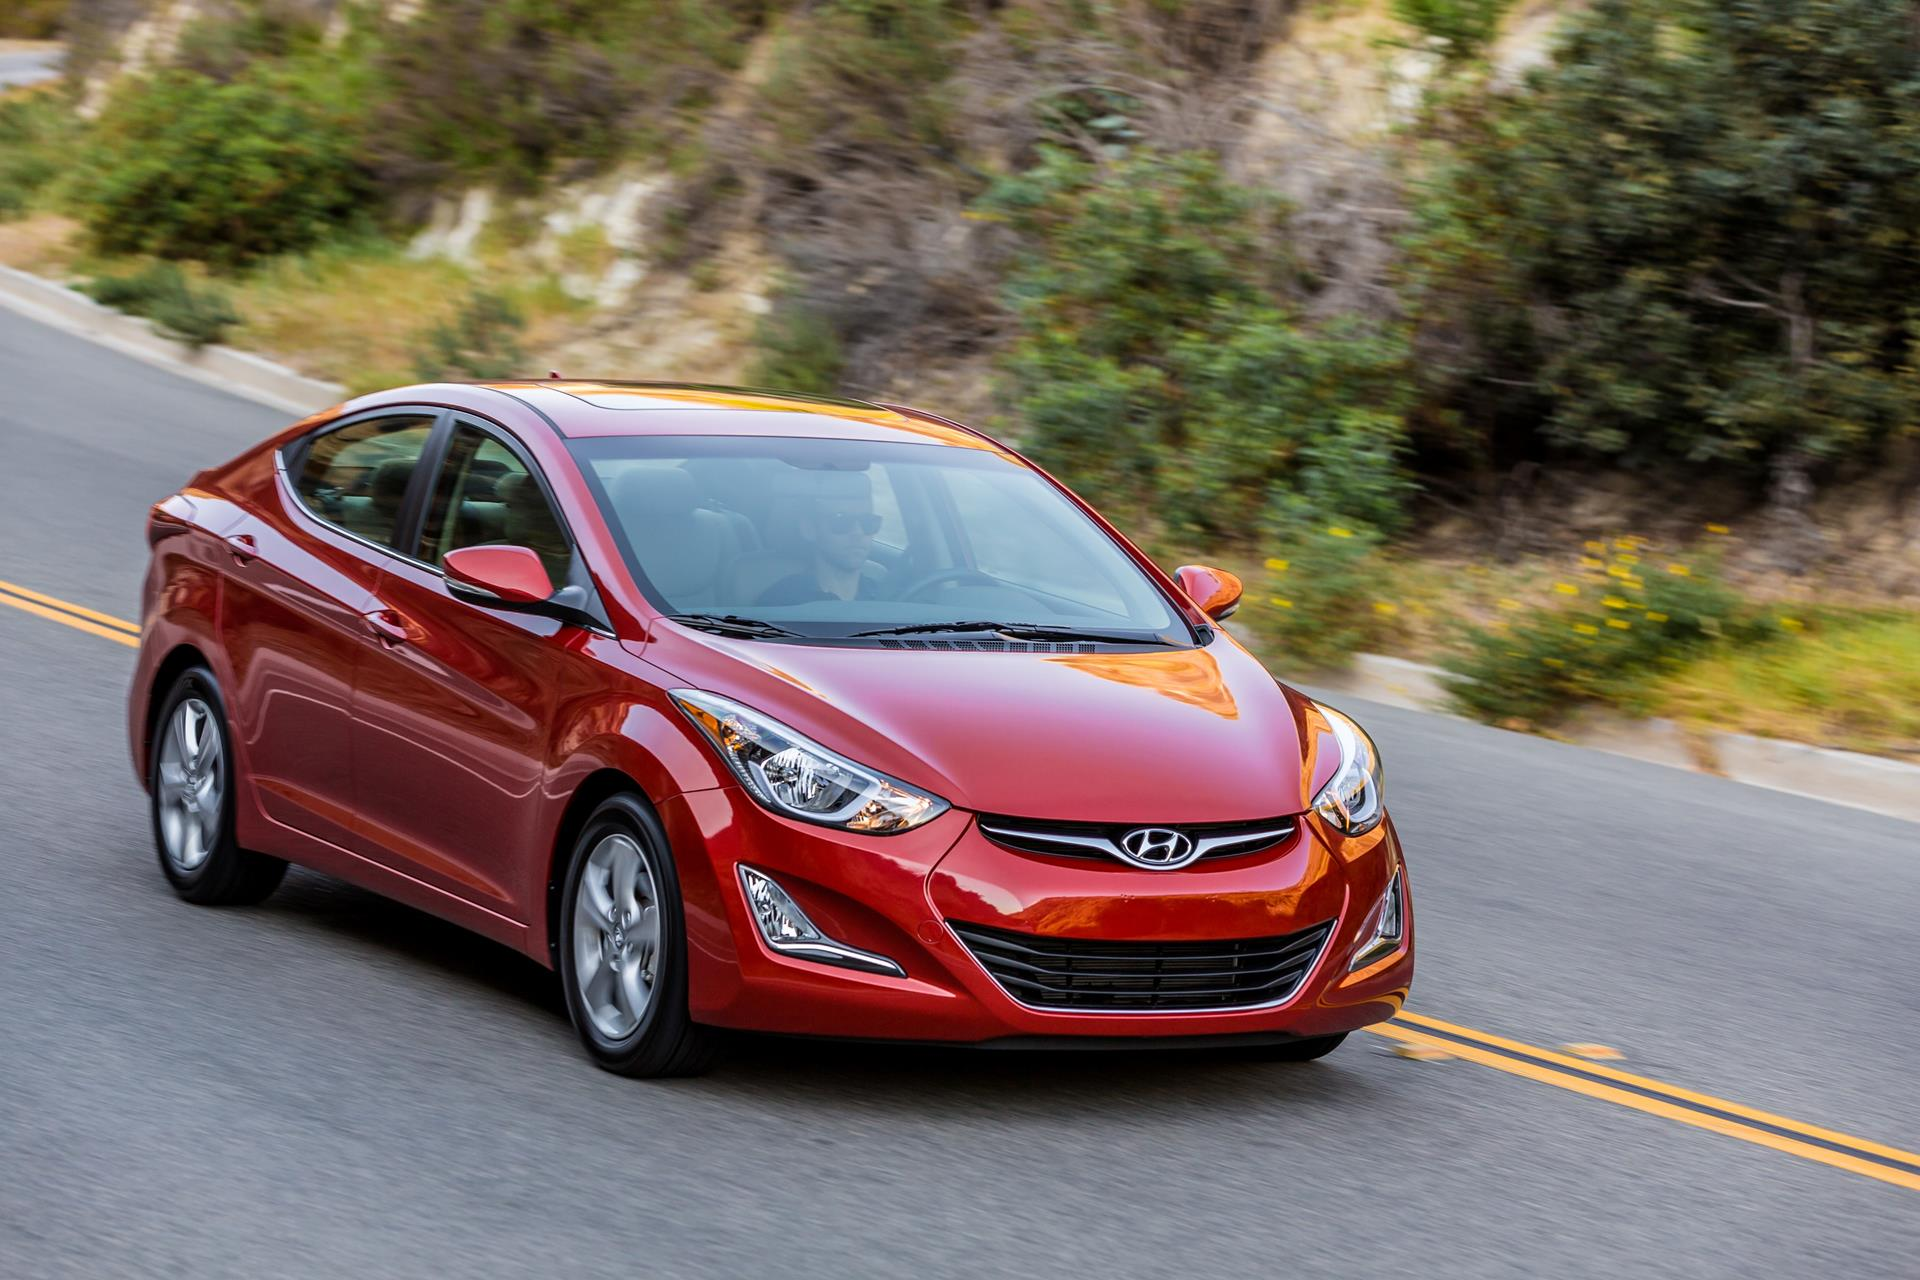 sport elantra edition sub hyundai limited released editio